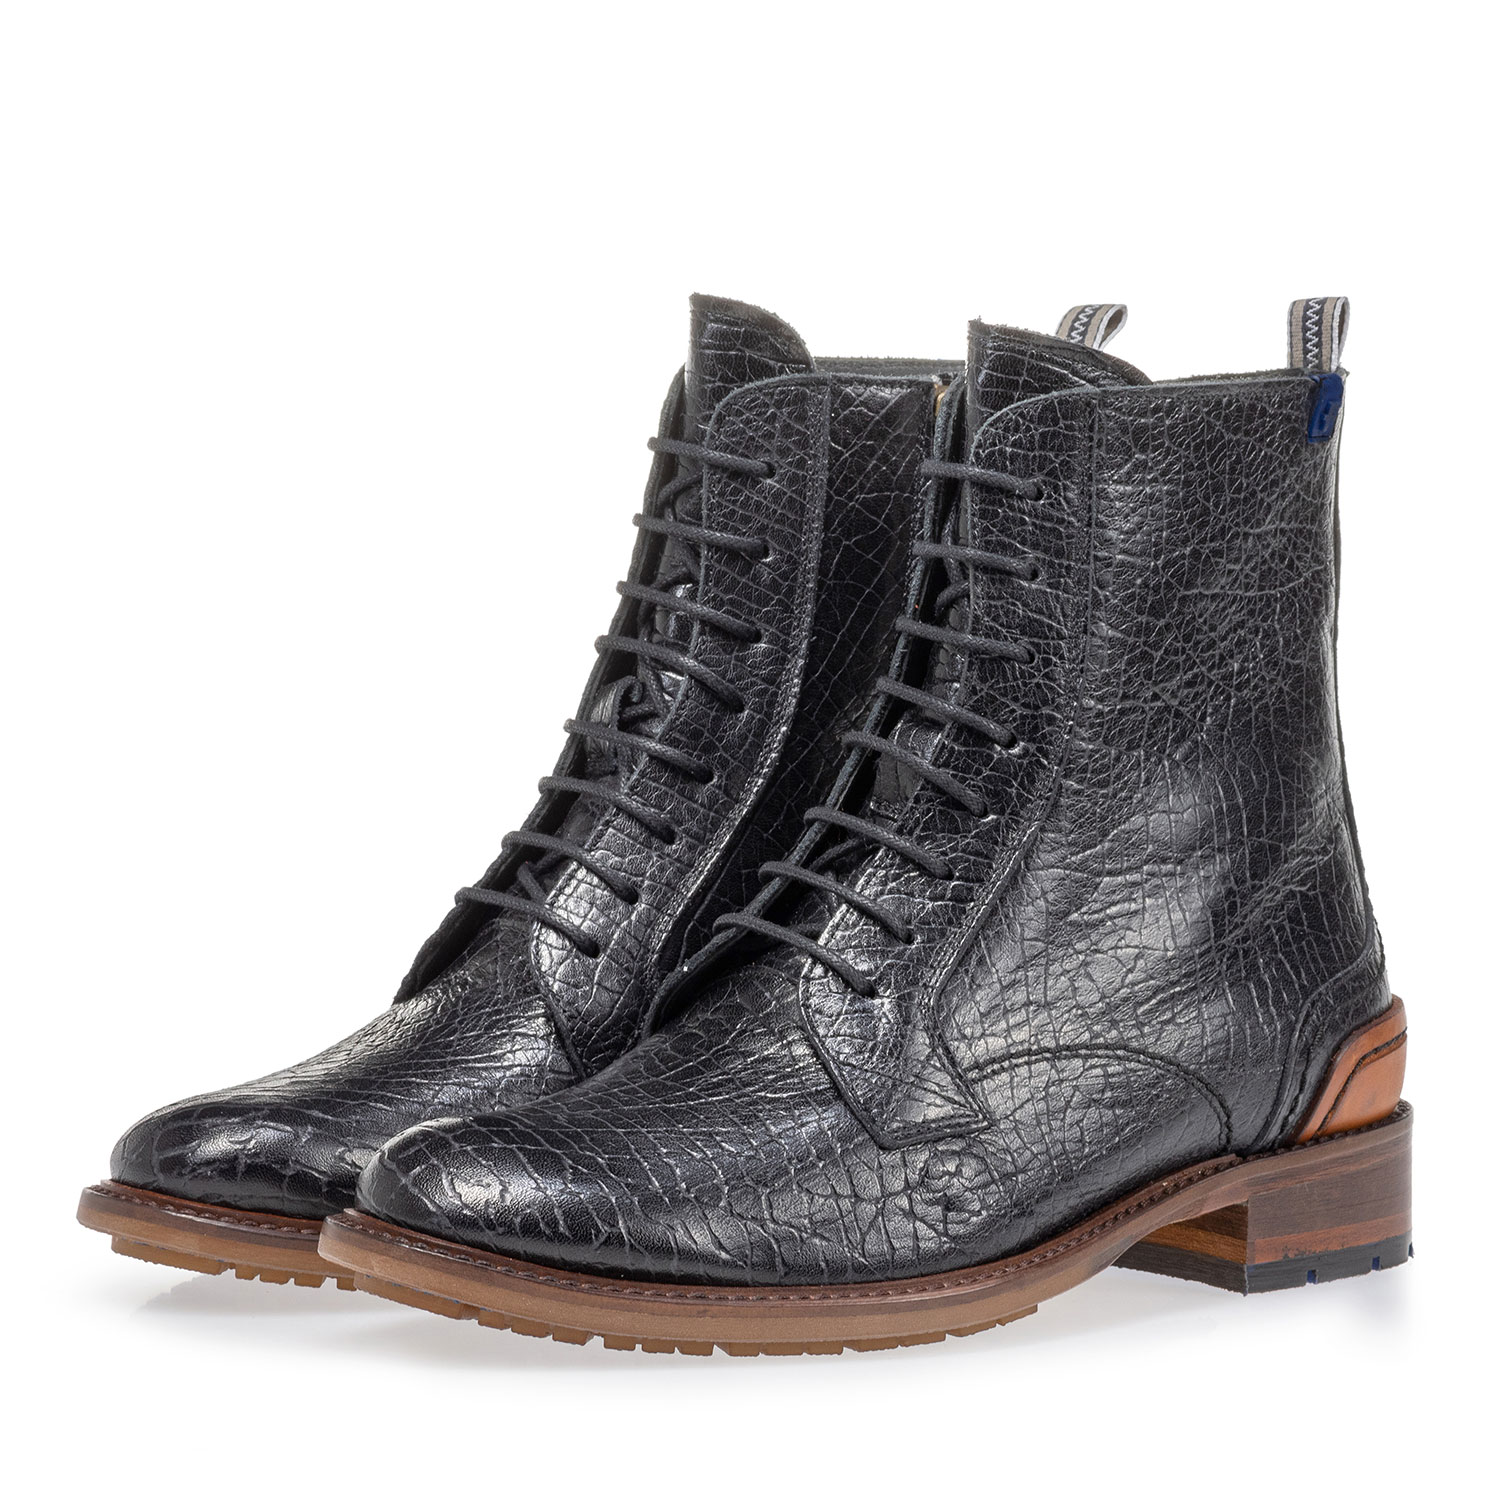 85644/01 - Lace boot craquelé leather black